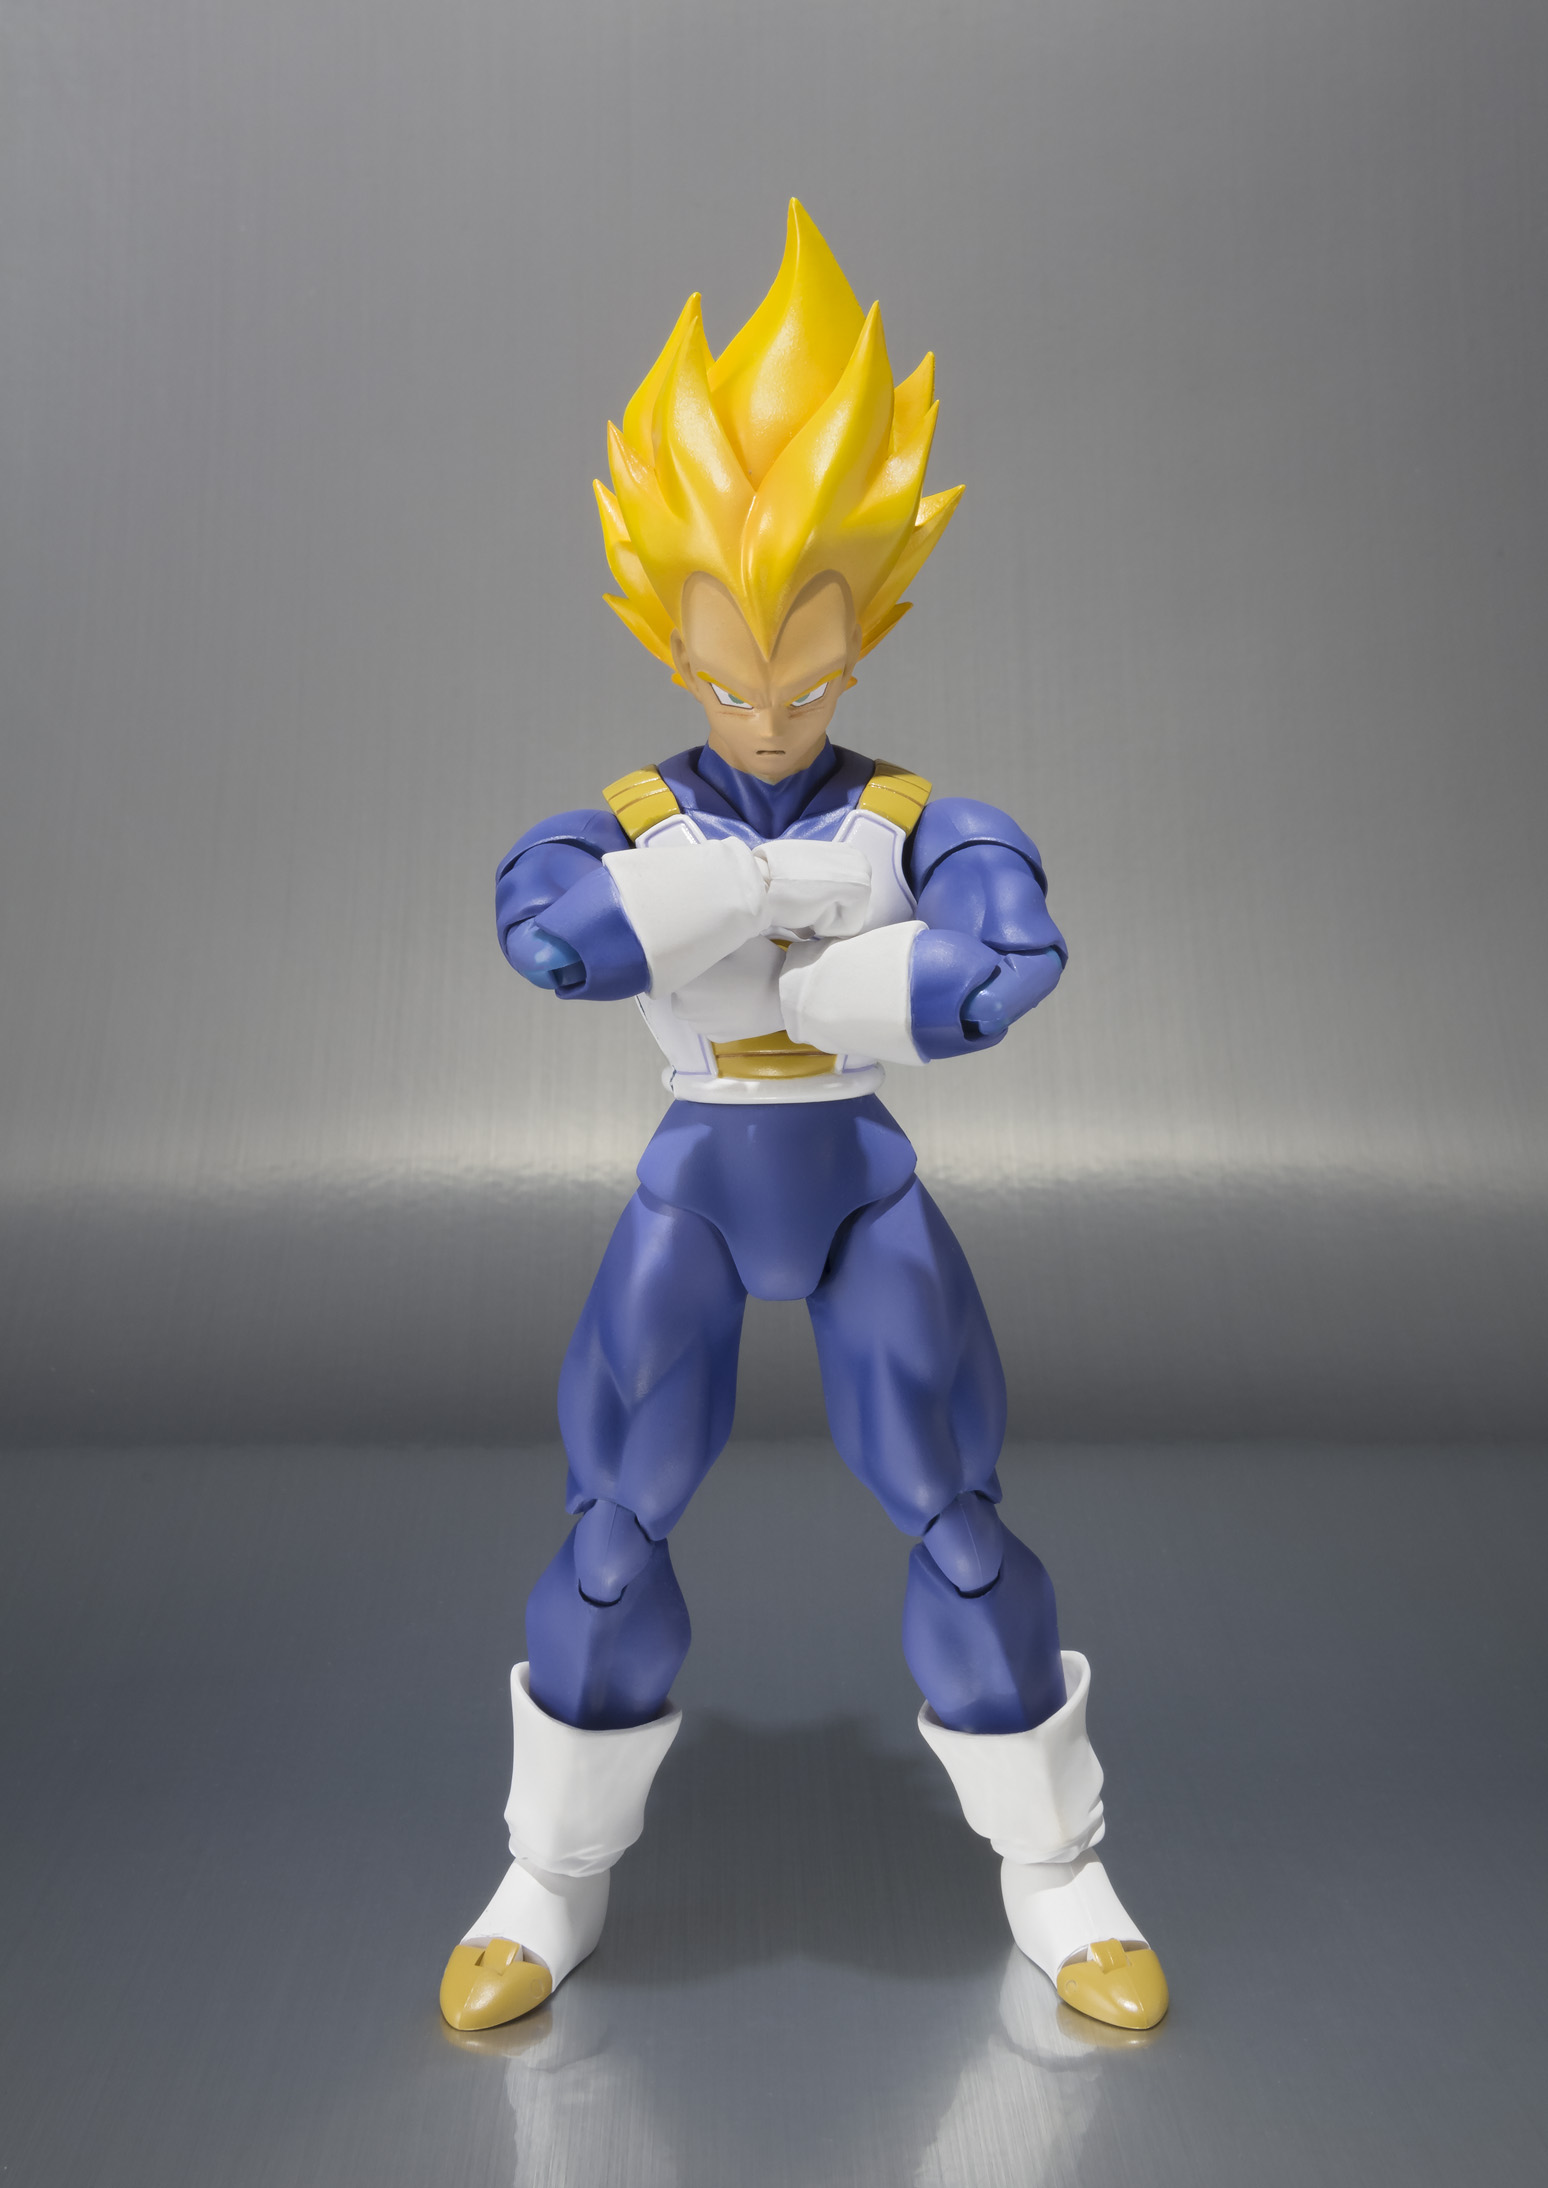 S.H.Figuarts Dragon Ball - Super Saiyan Vegeta Premium Color Edition